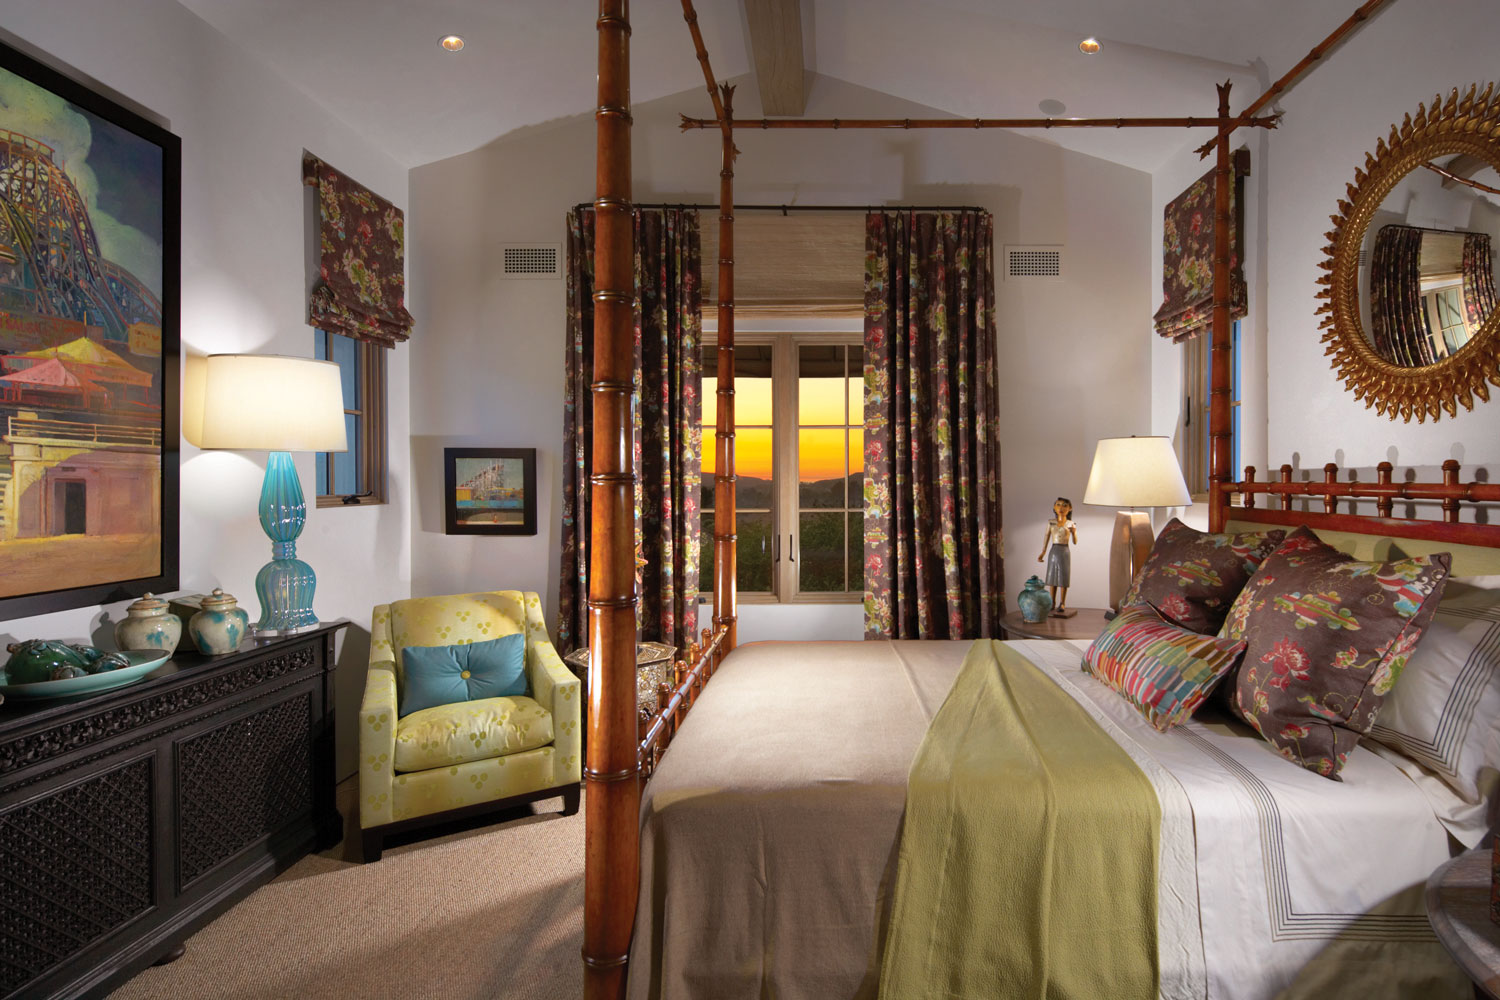 Eclectic-Guest-Bedroom-Vauled-Ceiling-Corbin-Reeves.jpg